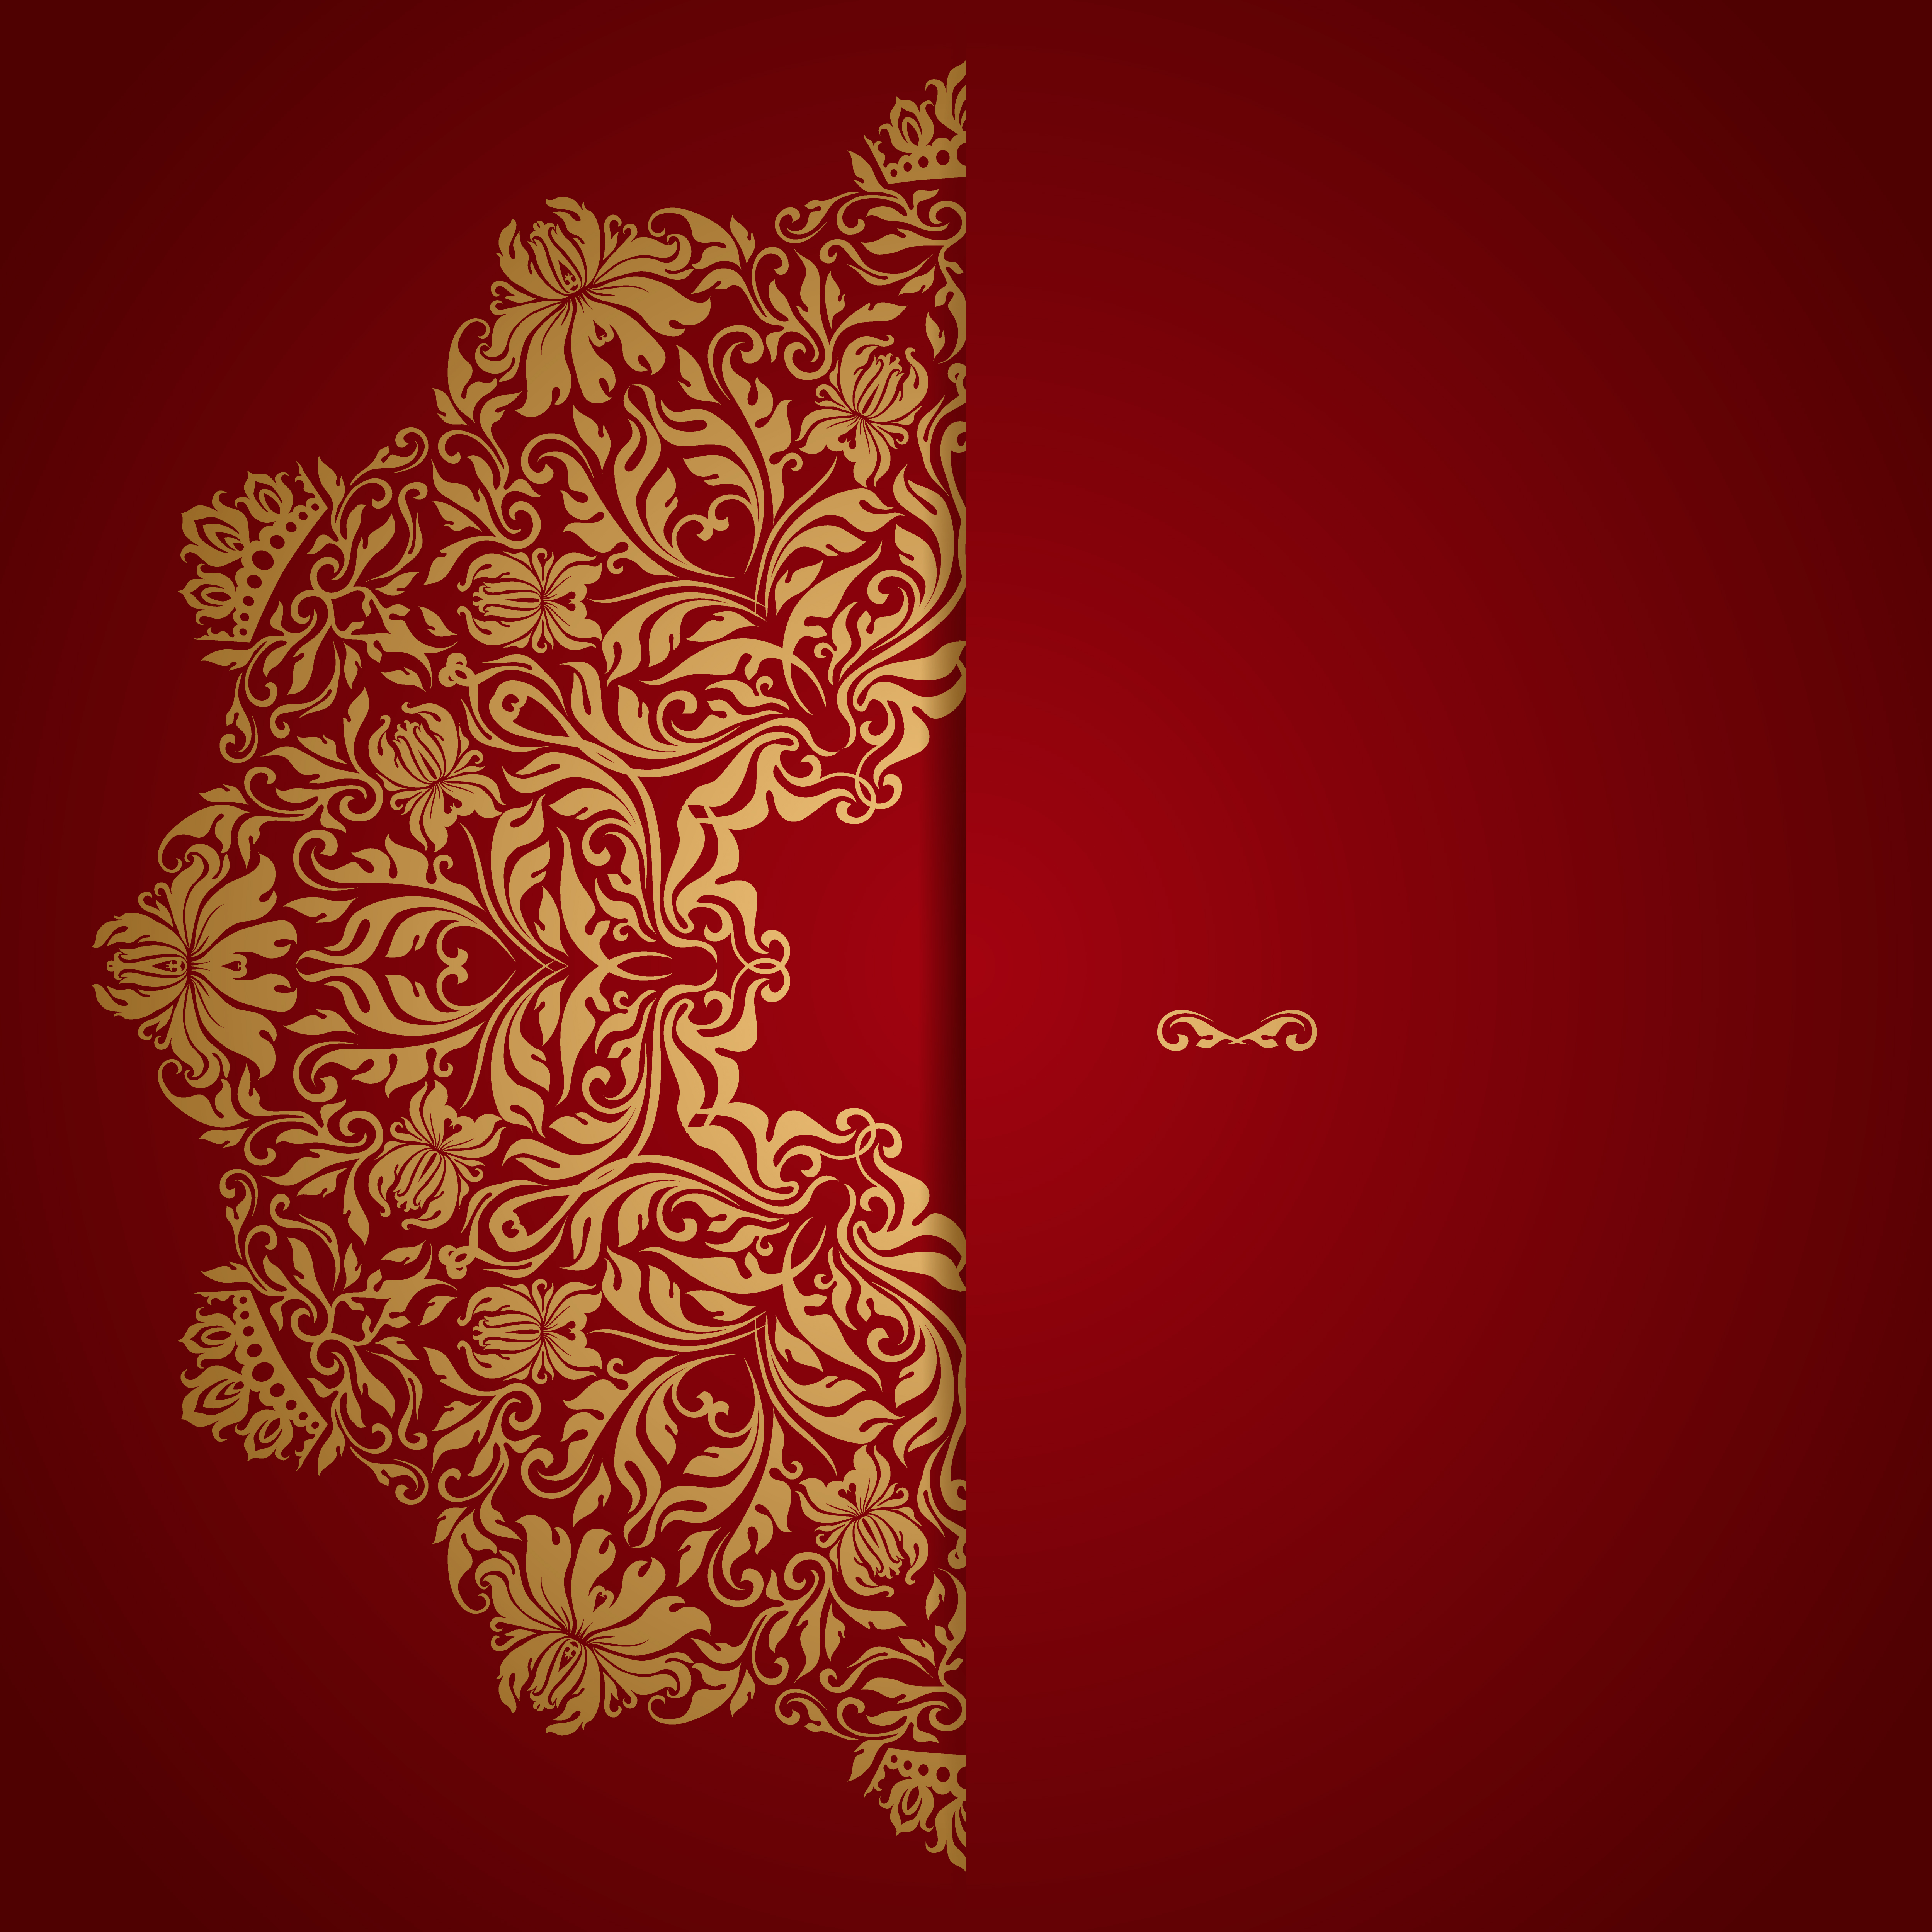 Red Wedding Invitation Vector Background, Red, Golden, Grain ...